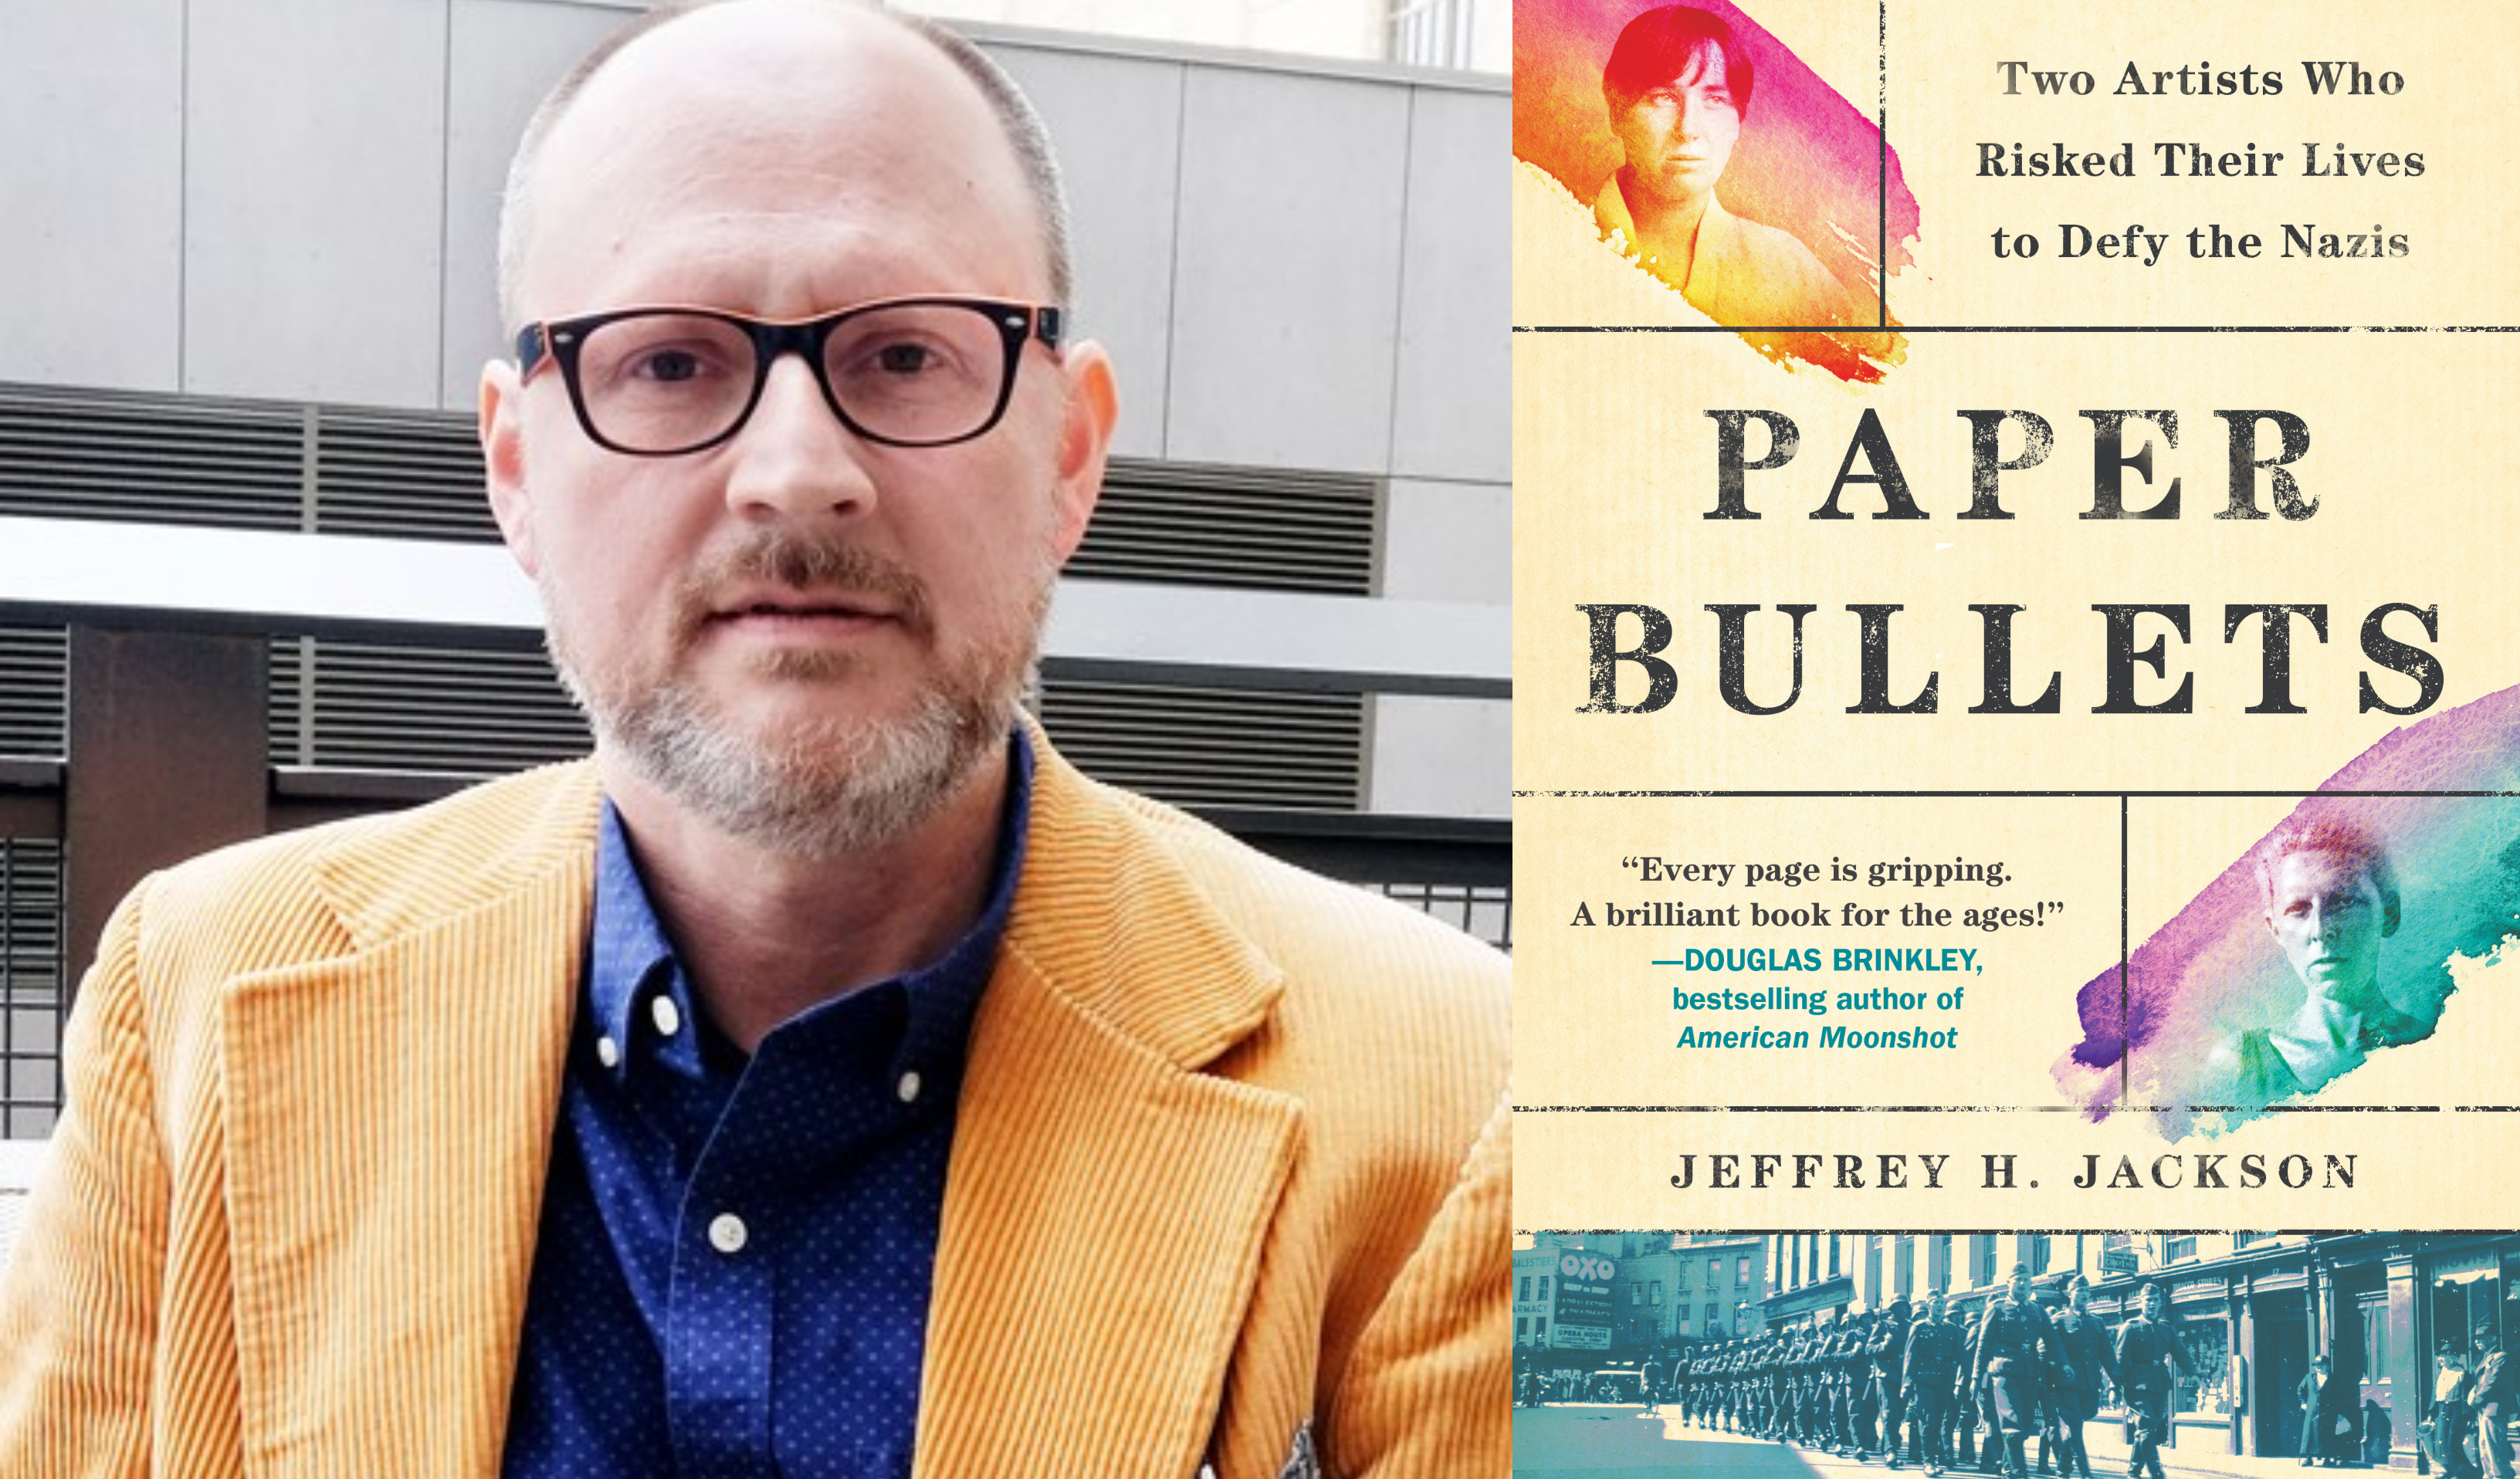 Author Dr. Jeffrey Jackson and the cover of Paper Bullets: Two Artists Who Risked Their Lives to Defy the Nazis (Algonquin Books, 2020).